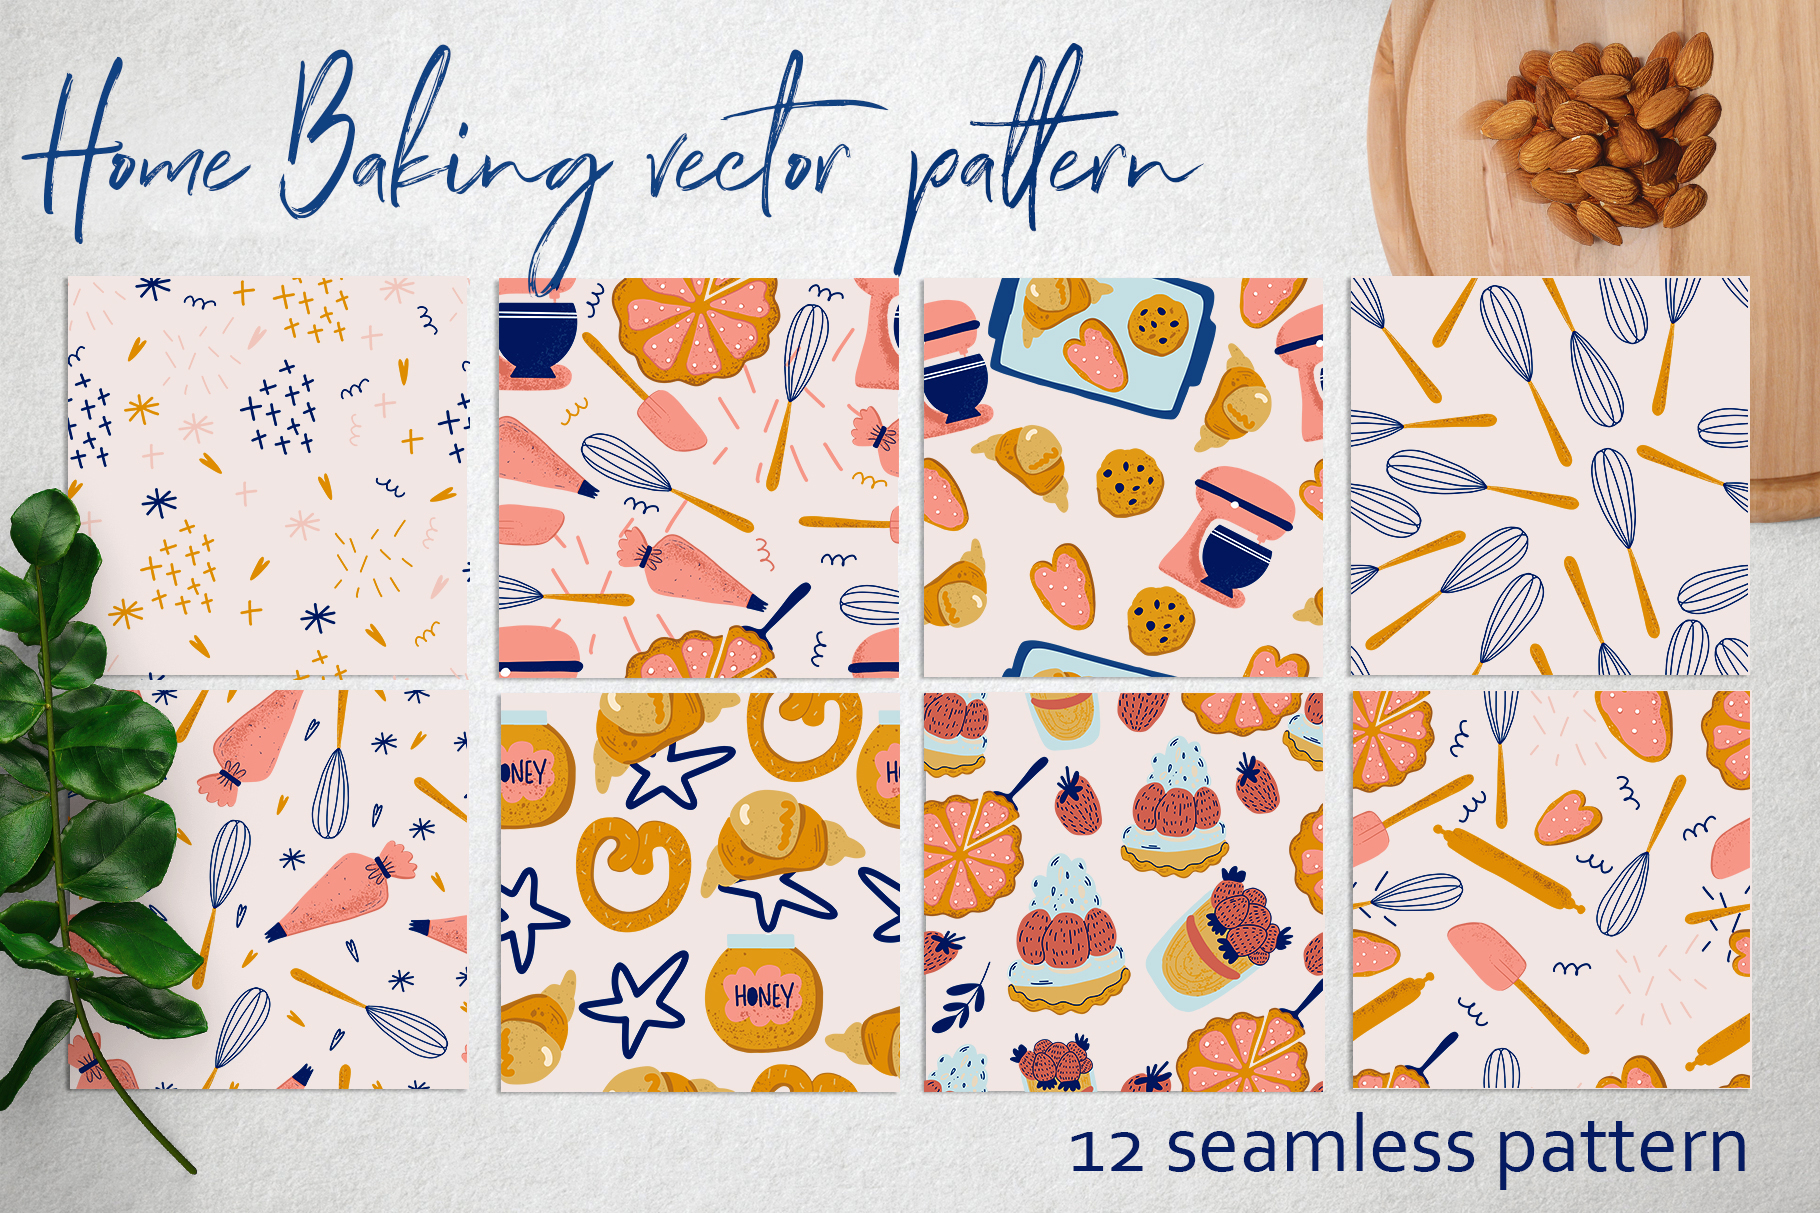 Download Free Home Baking Vector Pattern Graphic By By Anna Sokol Creative for Cricut Explore, Silhouette and other cutting machines.